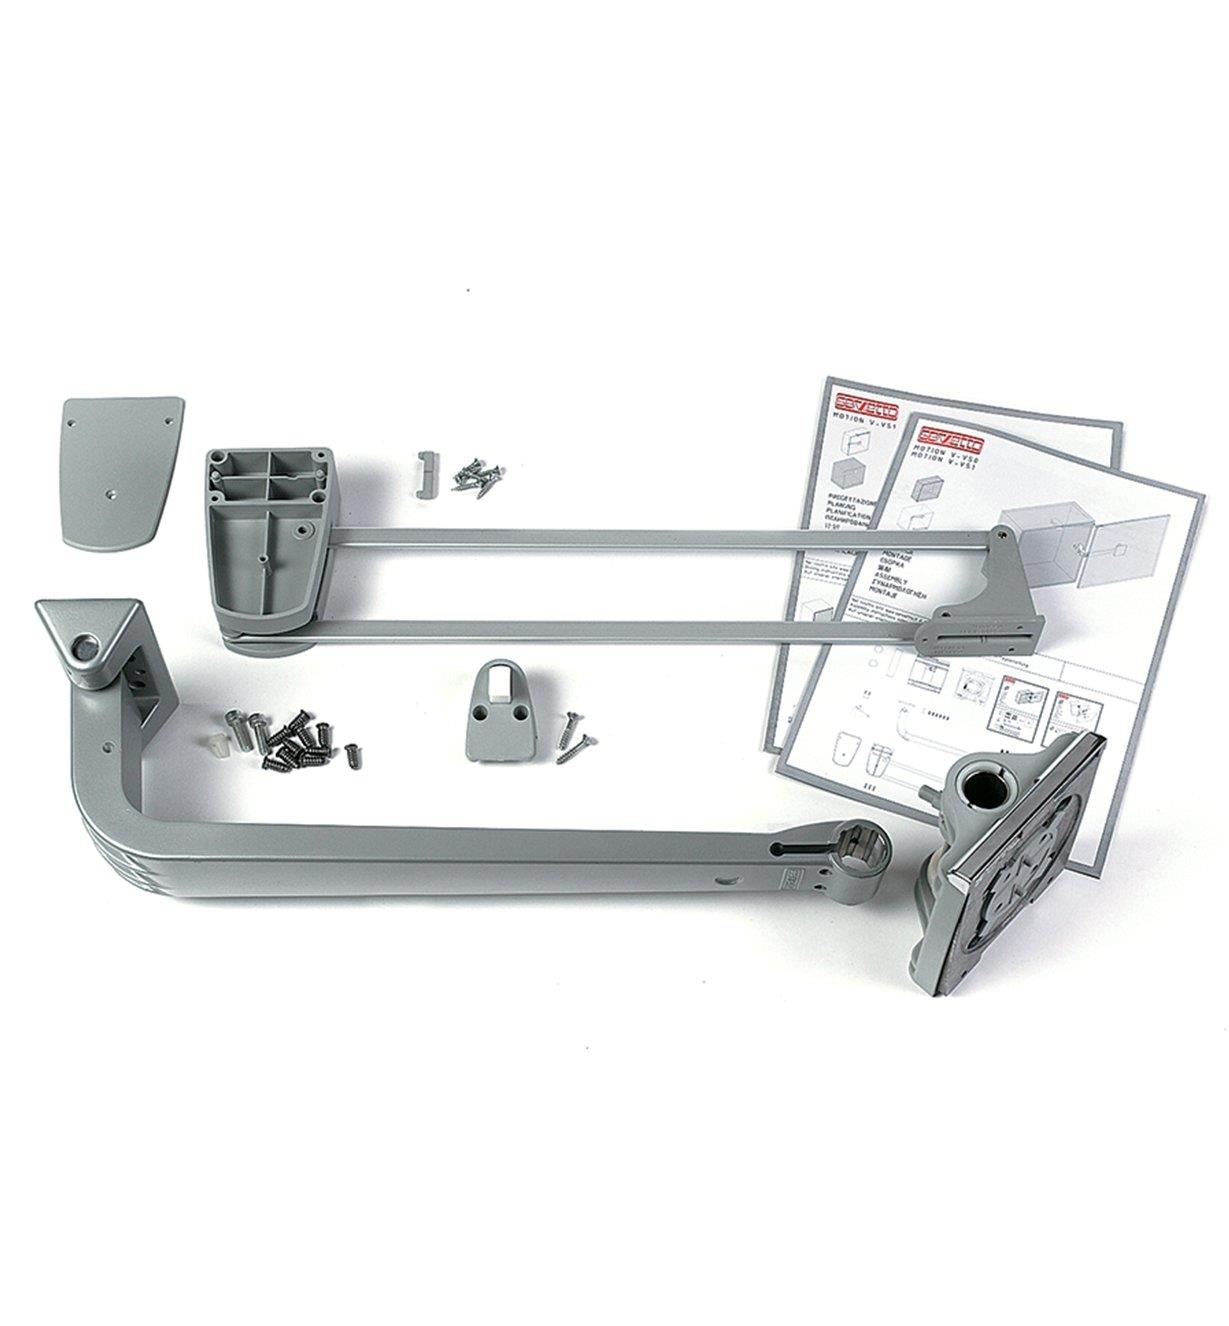 17K1560 - Servetto Closet/Pantry Hinge Kit